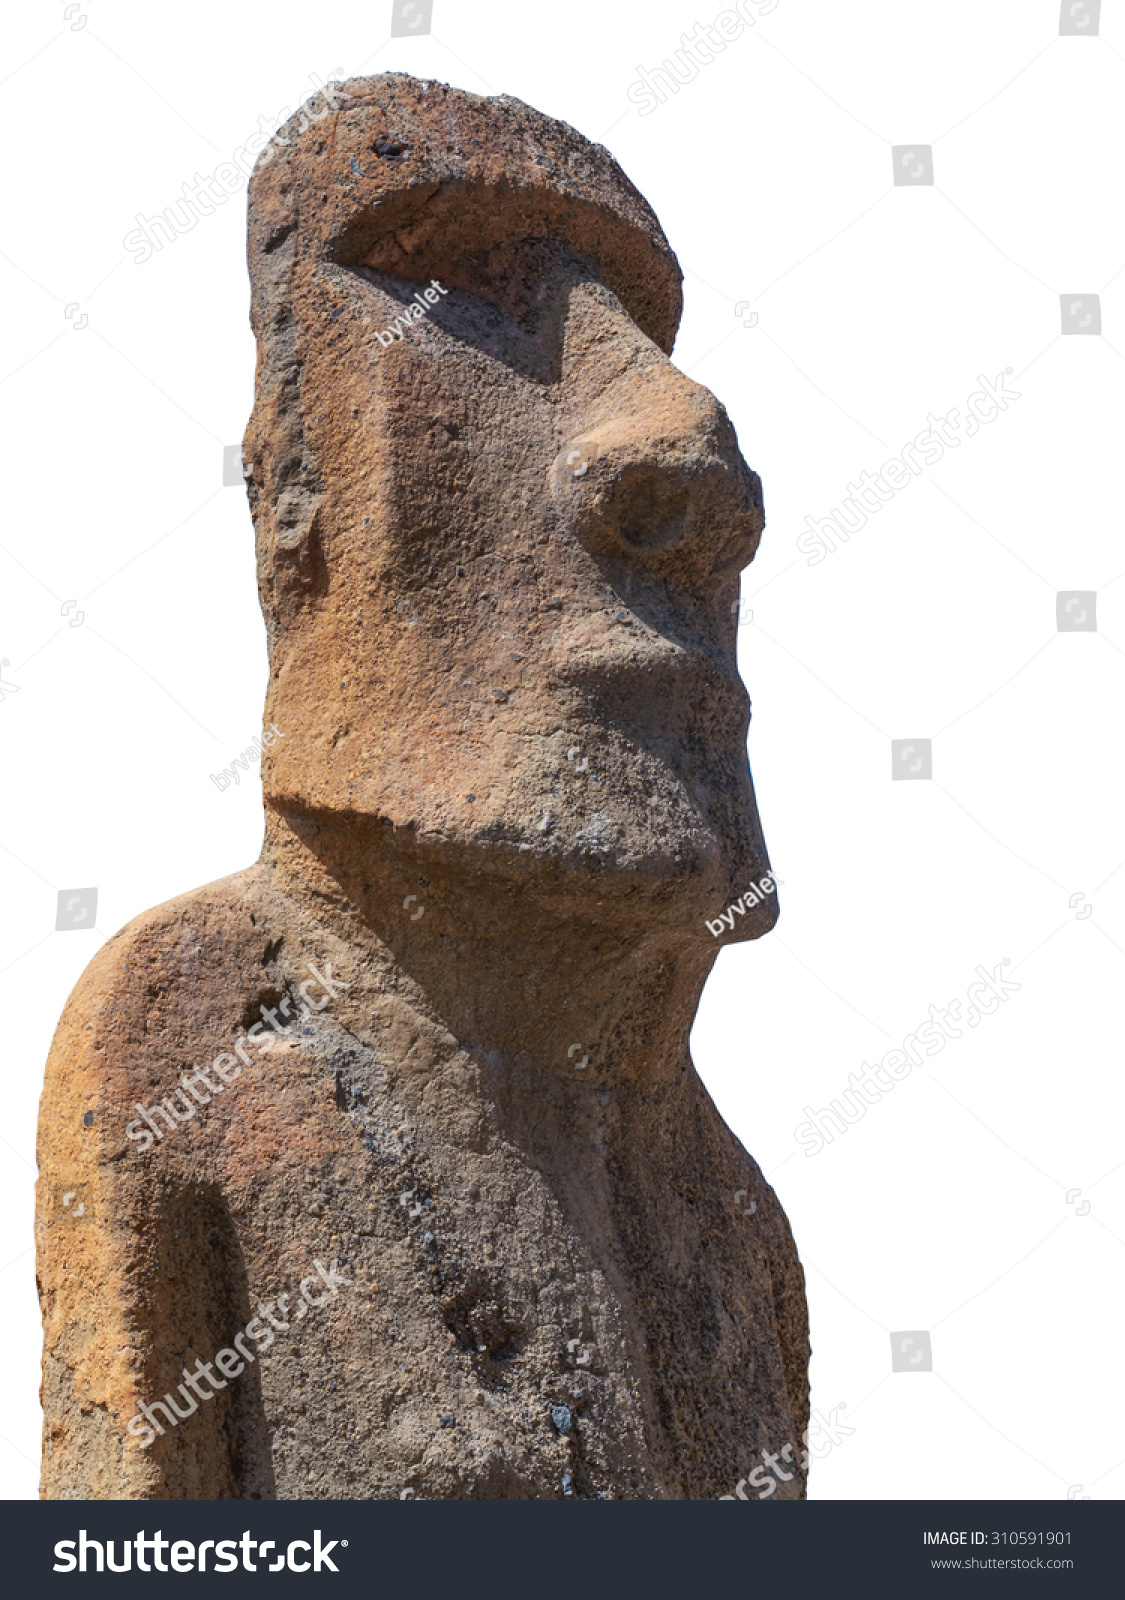 Sculpture of a moai carved in volcanic stone from easter